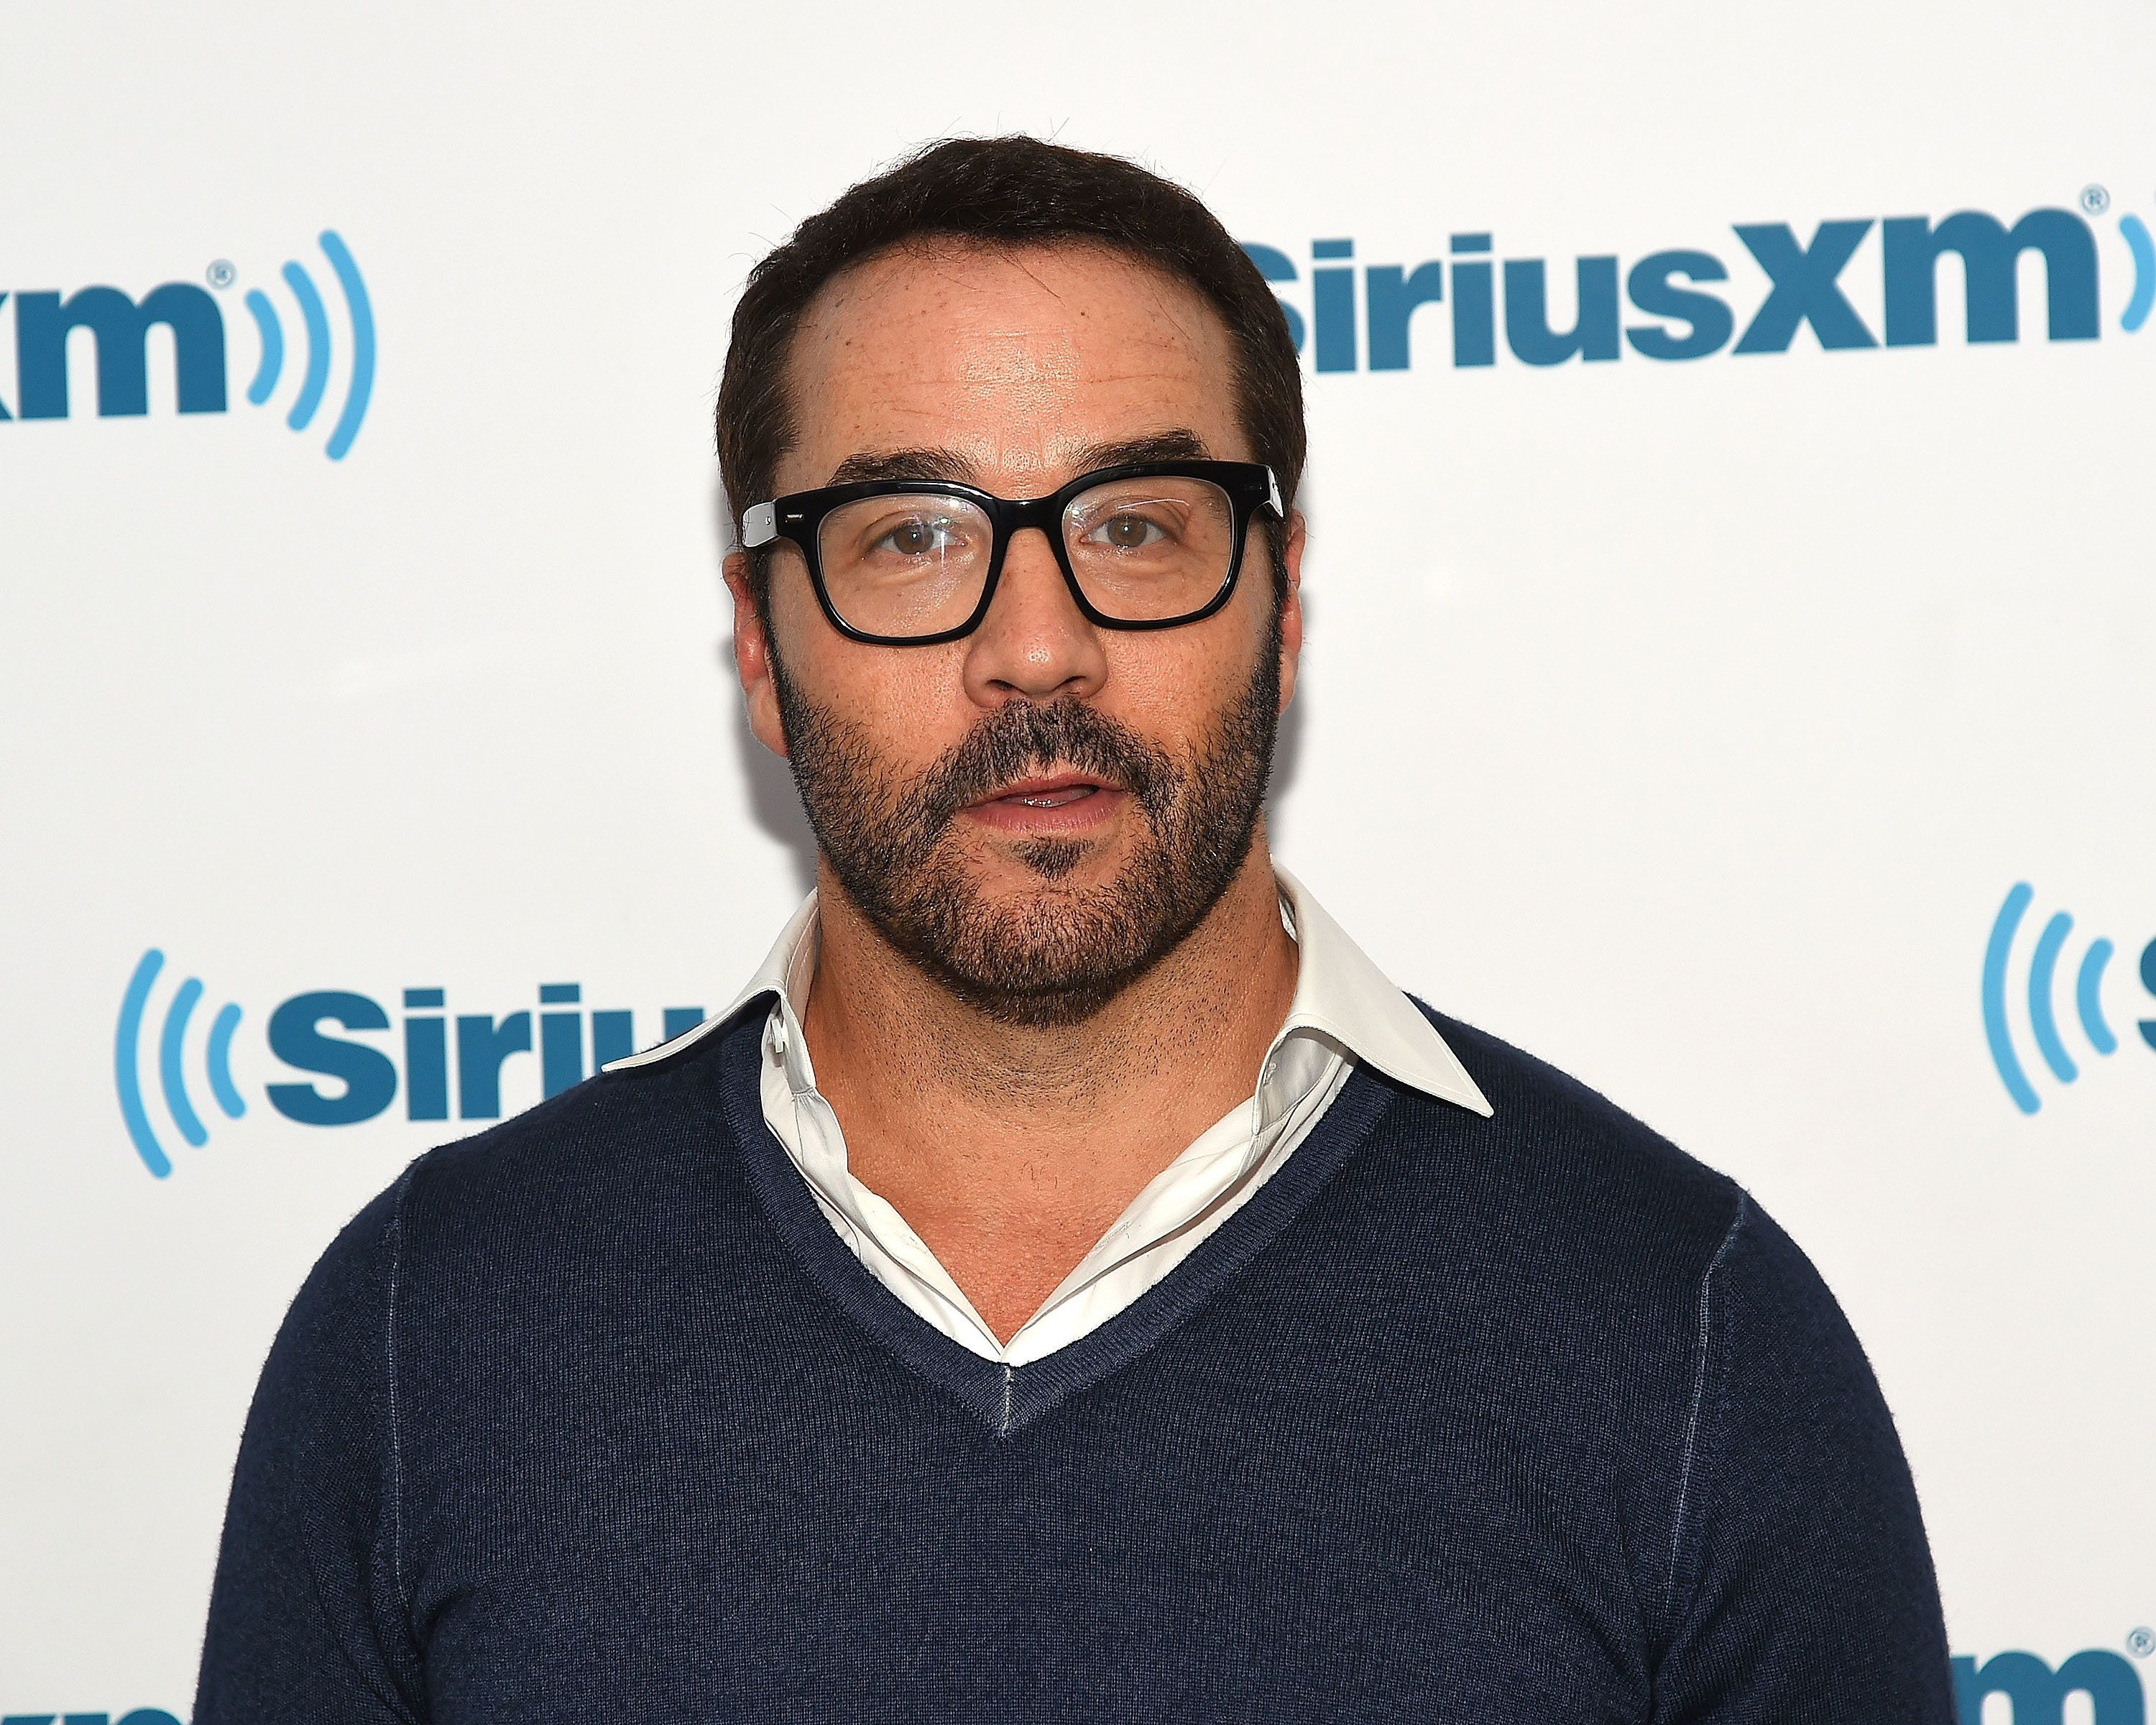 Jeremy Piven accused by third woman of sexual misconduct